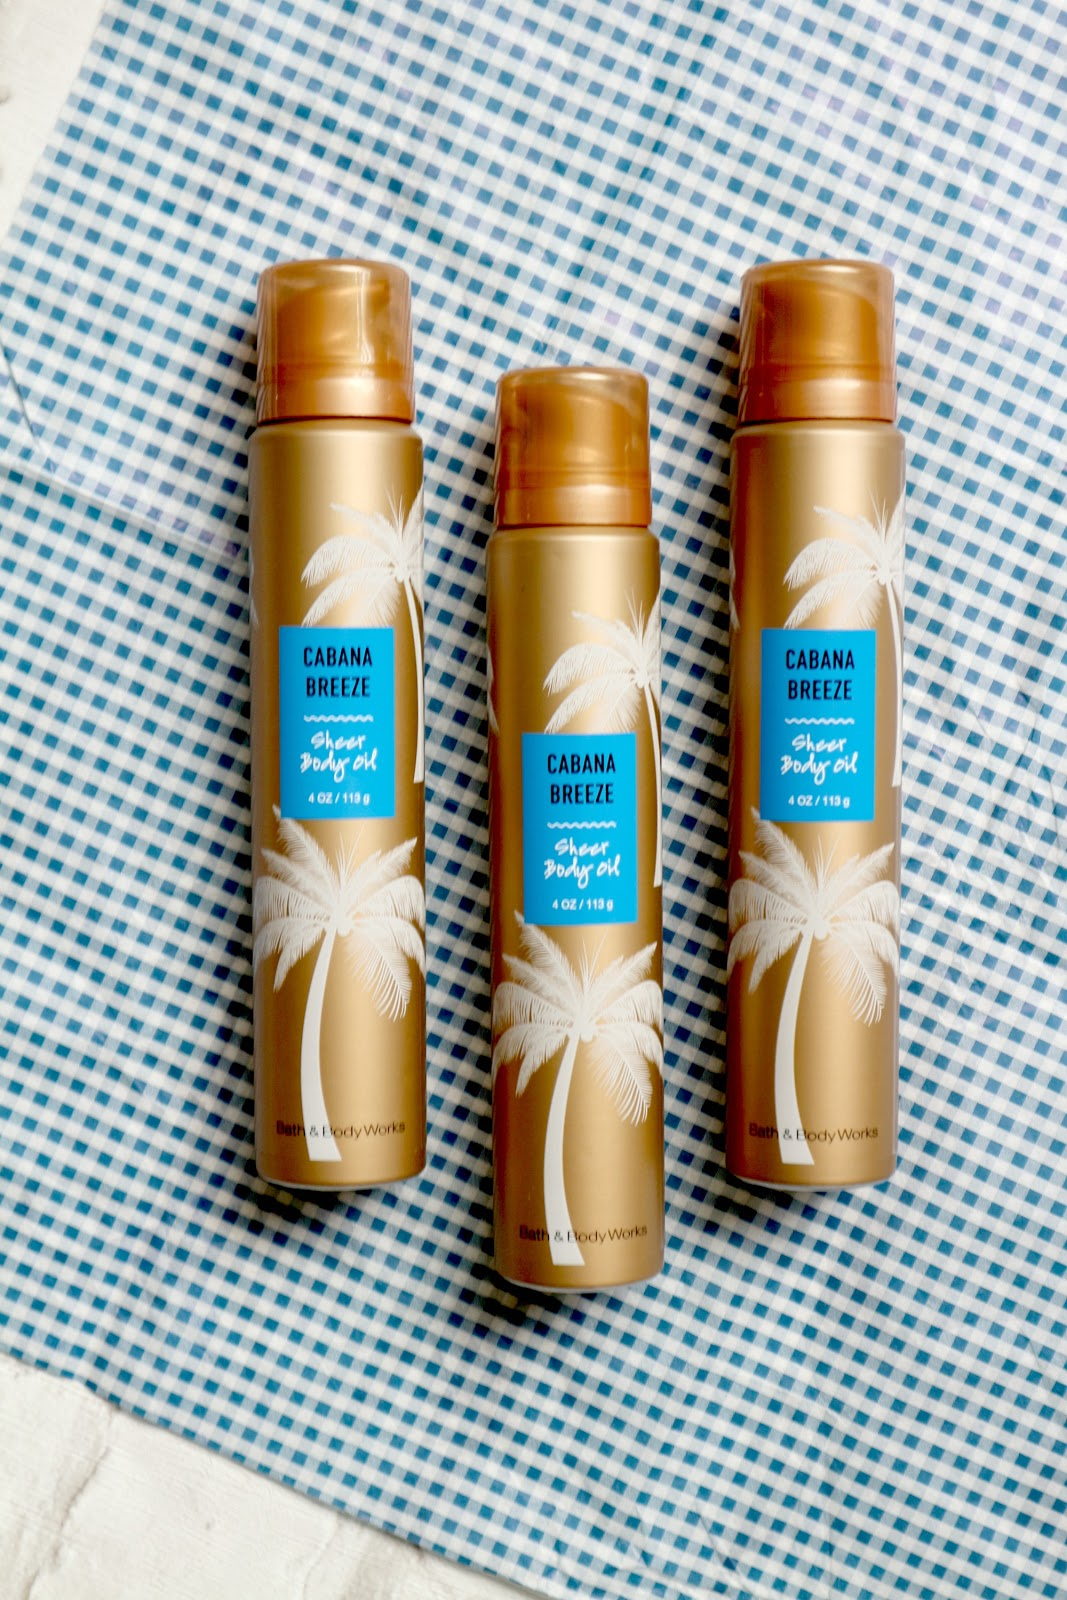 Bath and Body Works Sheer Body Oil